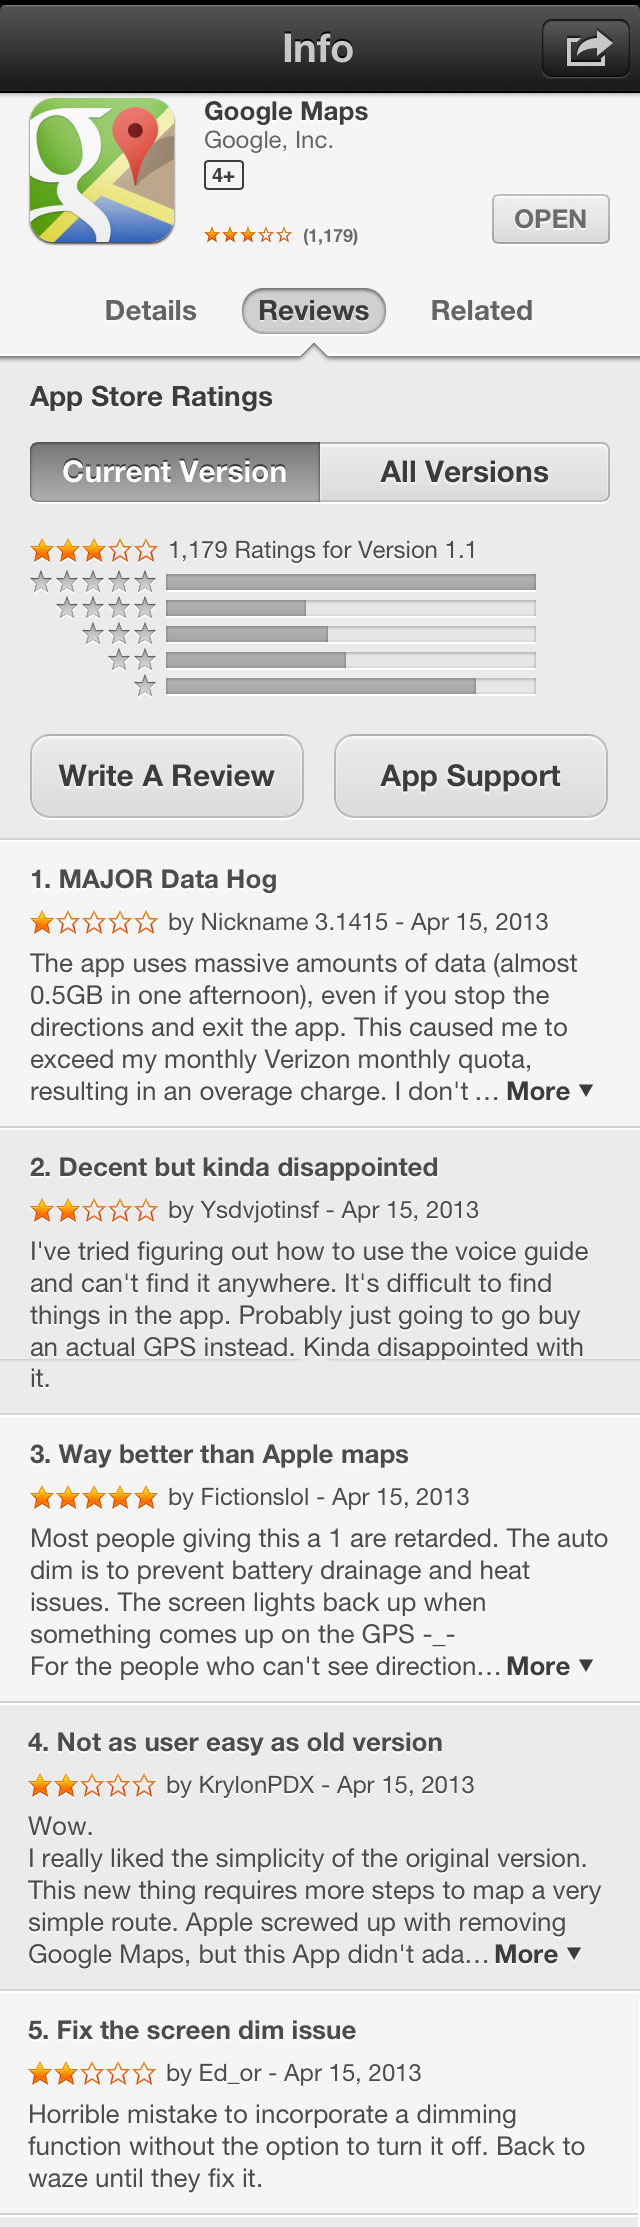 google-maps-for-iPhone-reviews